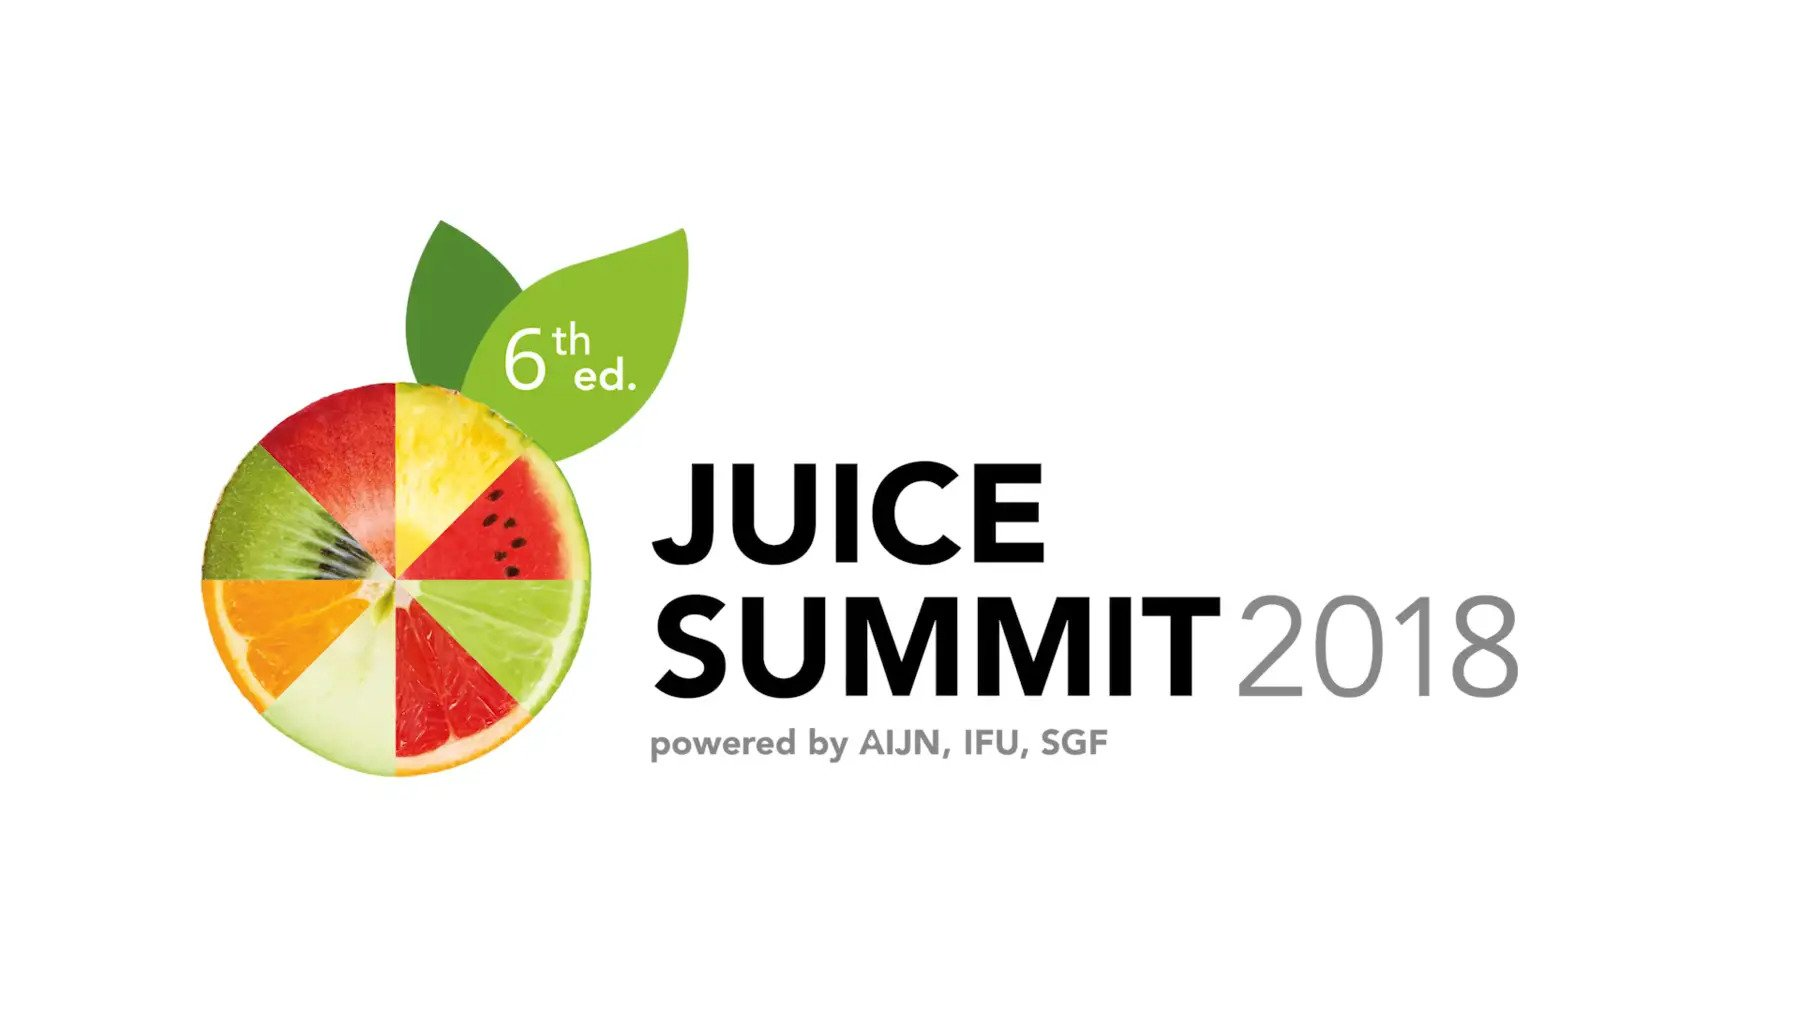 Juice Summit 2018